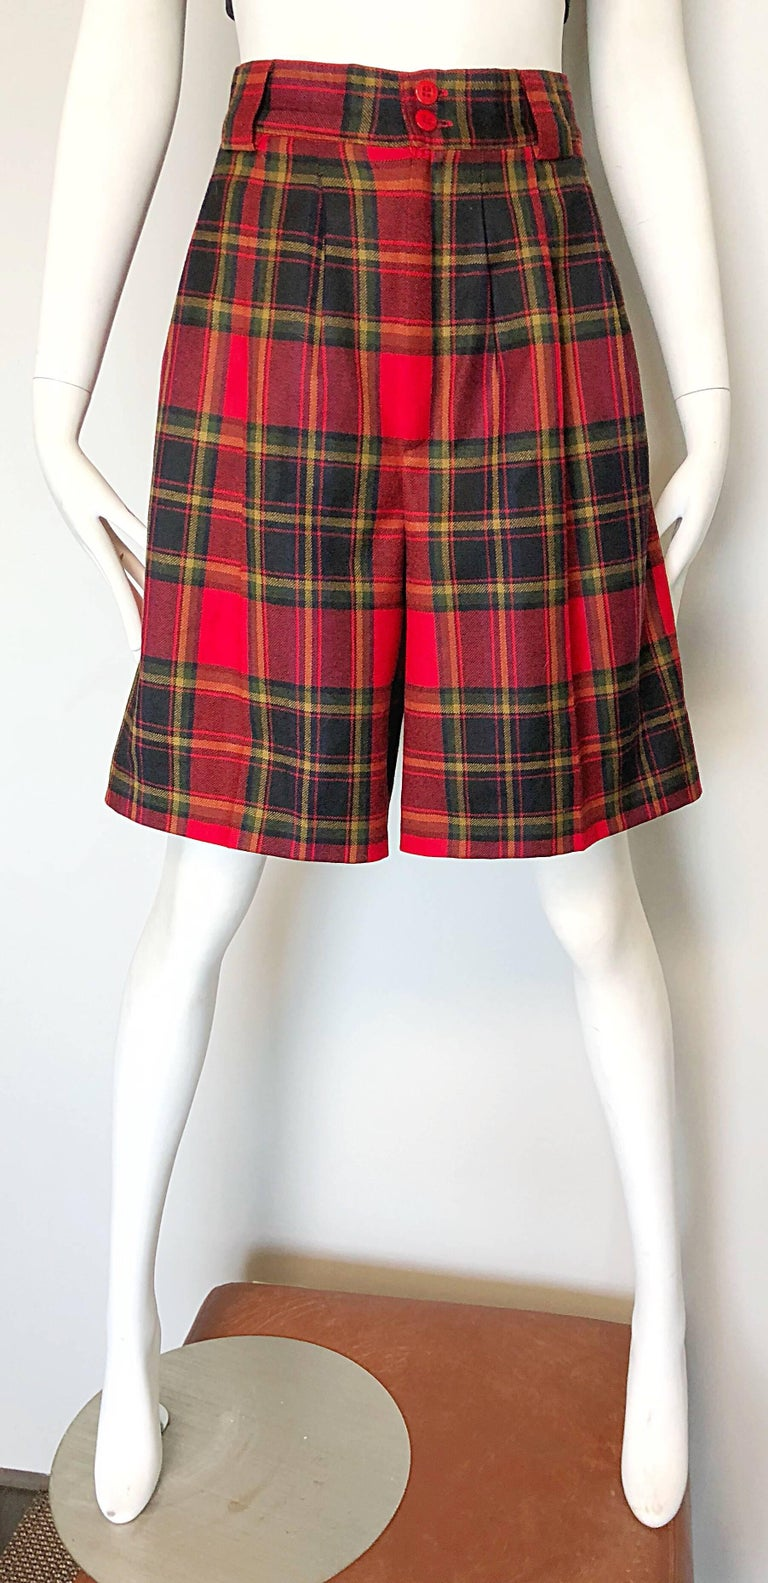 Brown Giorgio Sant Angelo 1980s Red Tartan Plaid Virgin Wool Vintage Culottes Shorts  For Sale